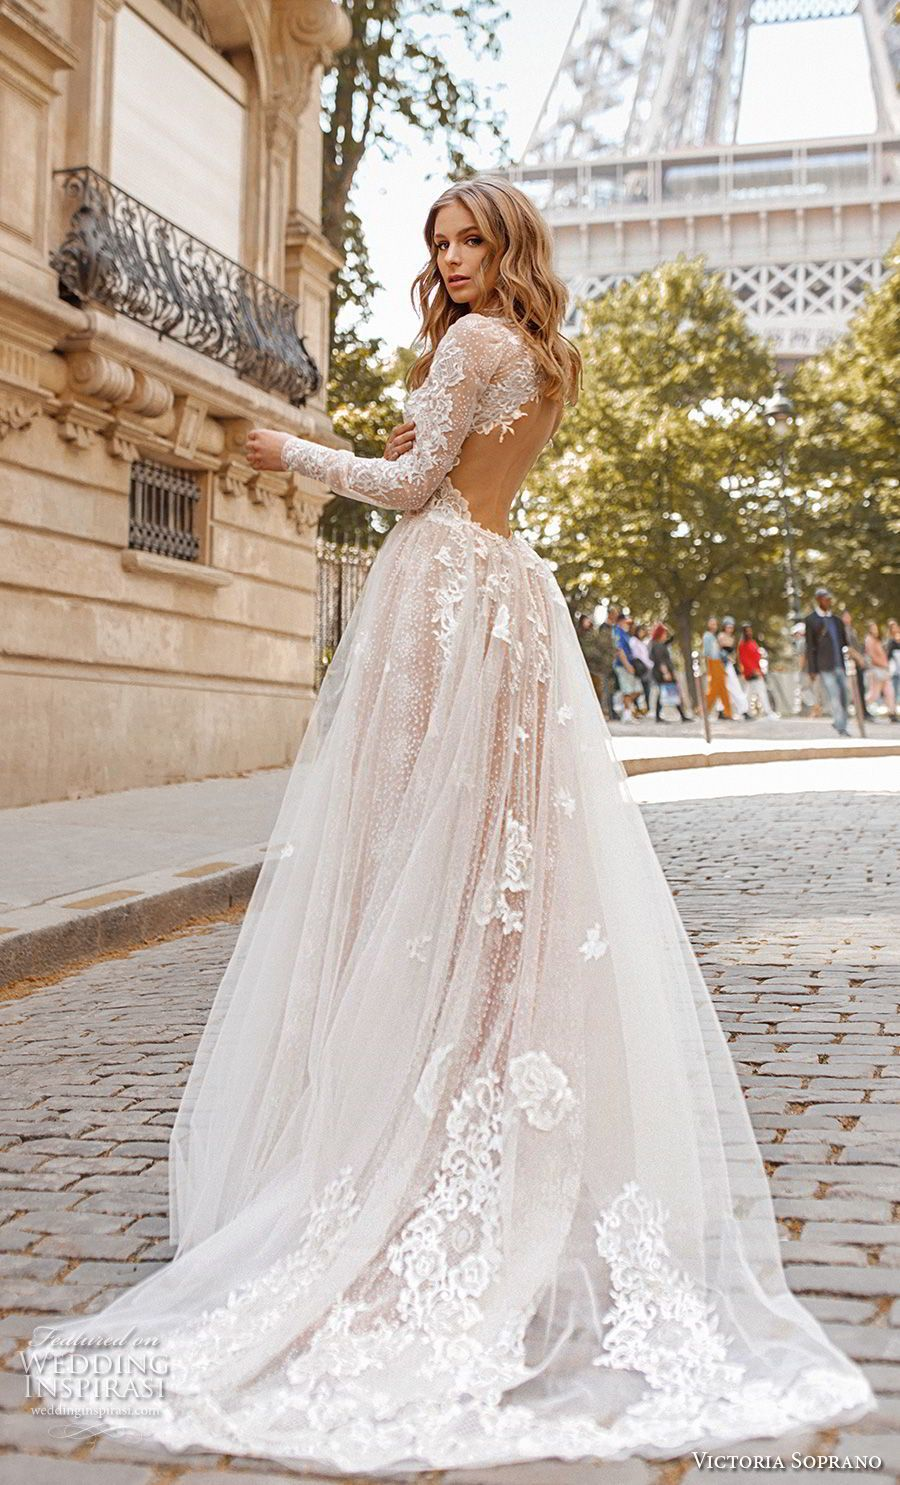 Victoria soprano wedding dresses u uclove in parisud bridal